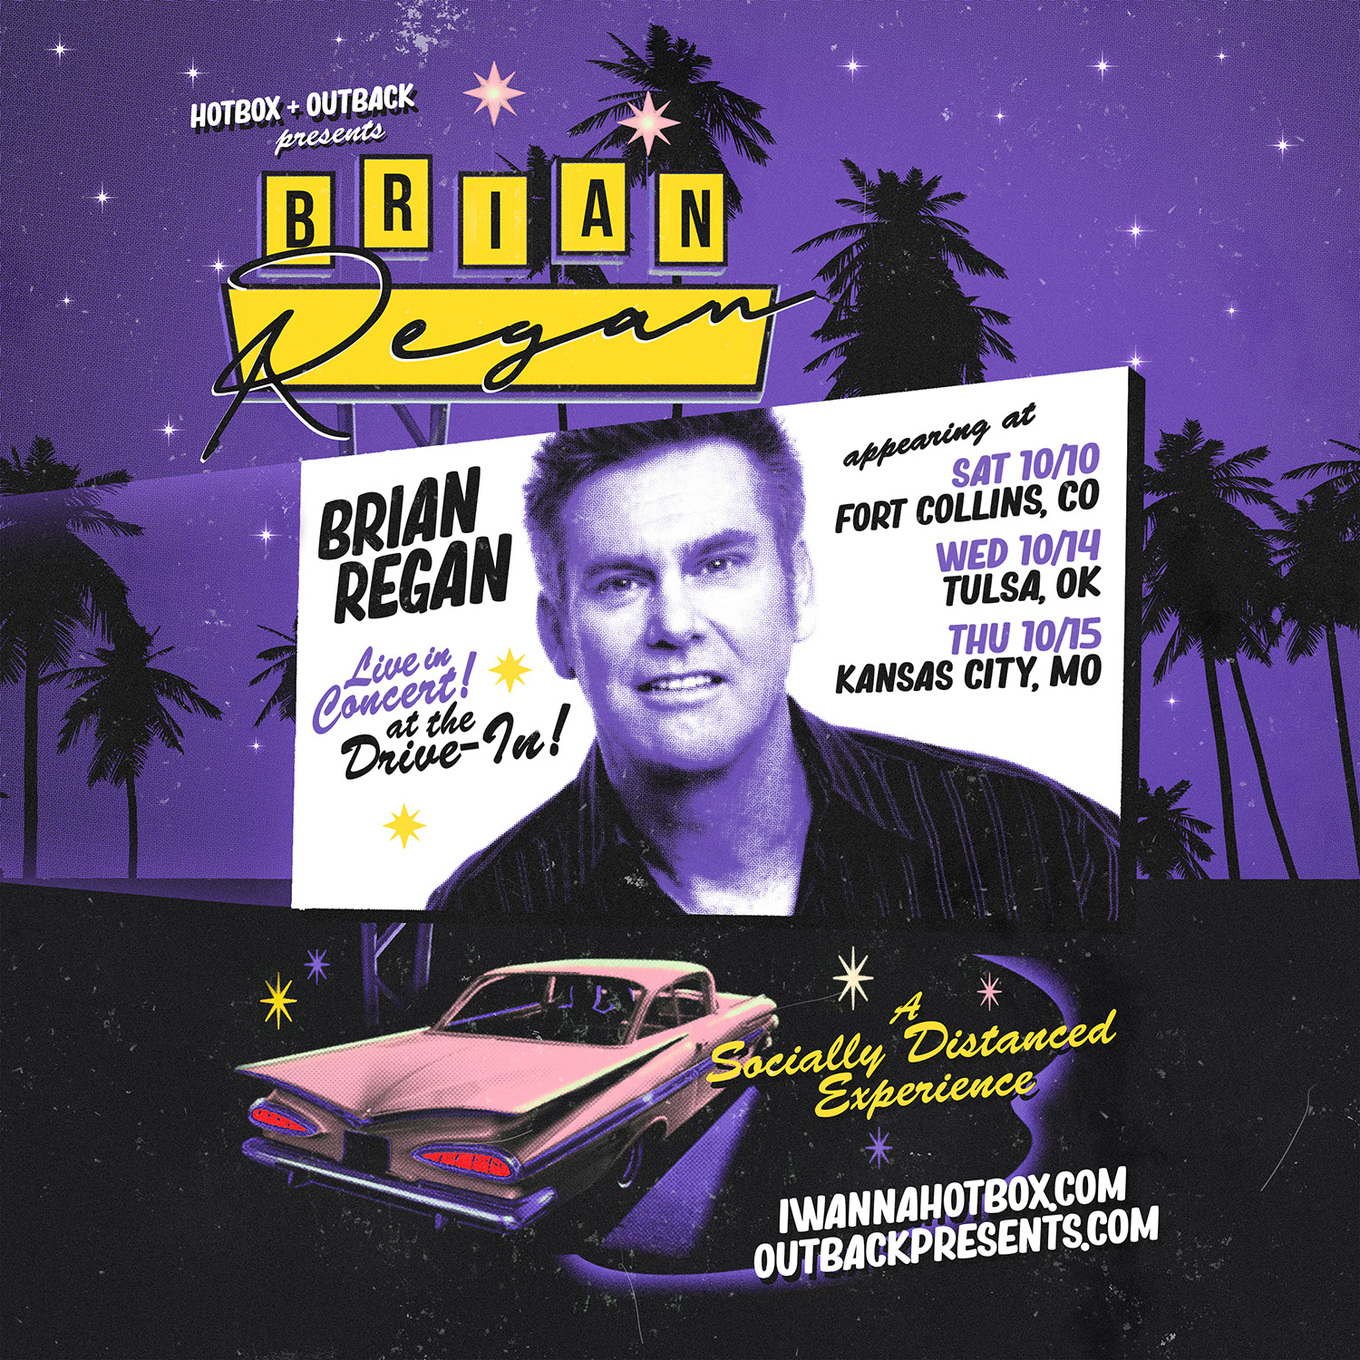 brian regan live at the drive in tour fort collins co tickets holiday twin drive in fort collins co october 10 2020 holiday twin drive in fort collins co